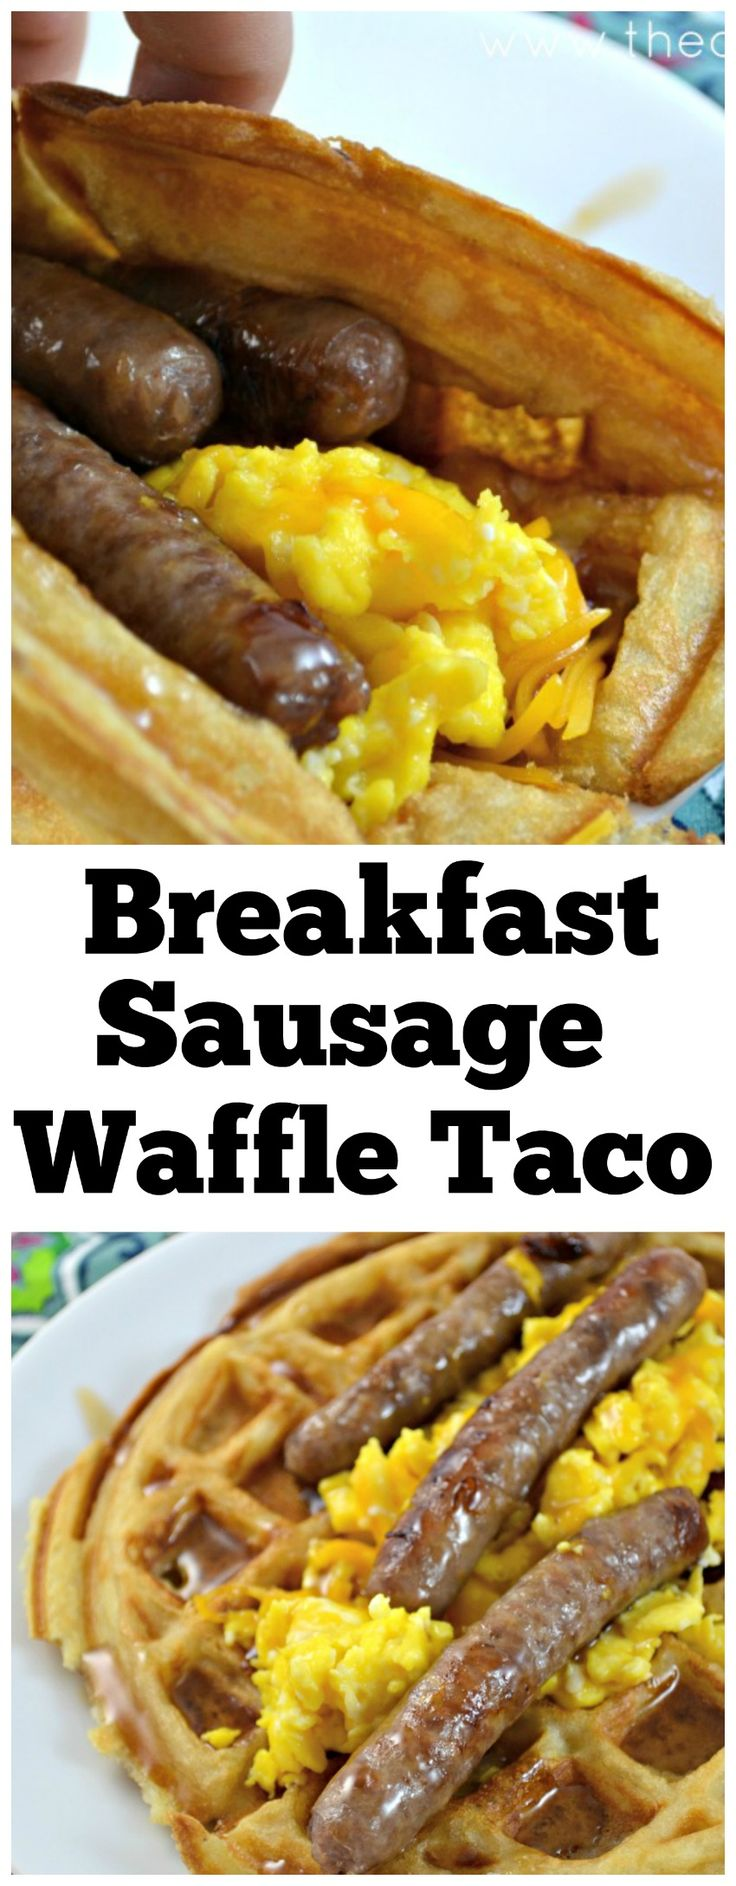 Learn how to make the perfect breakfast for dinner with easy sausage waffle tacos!